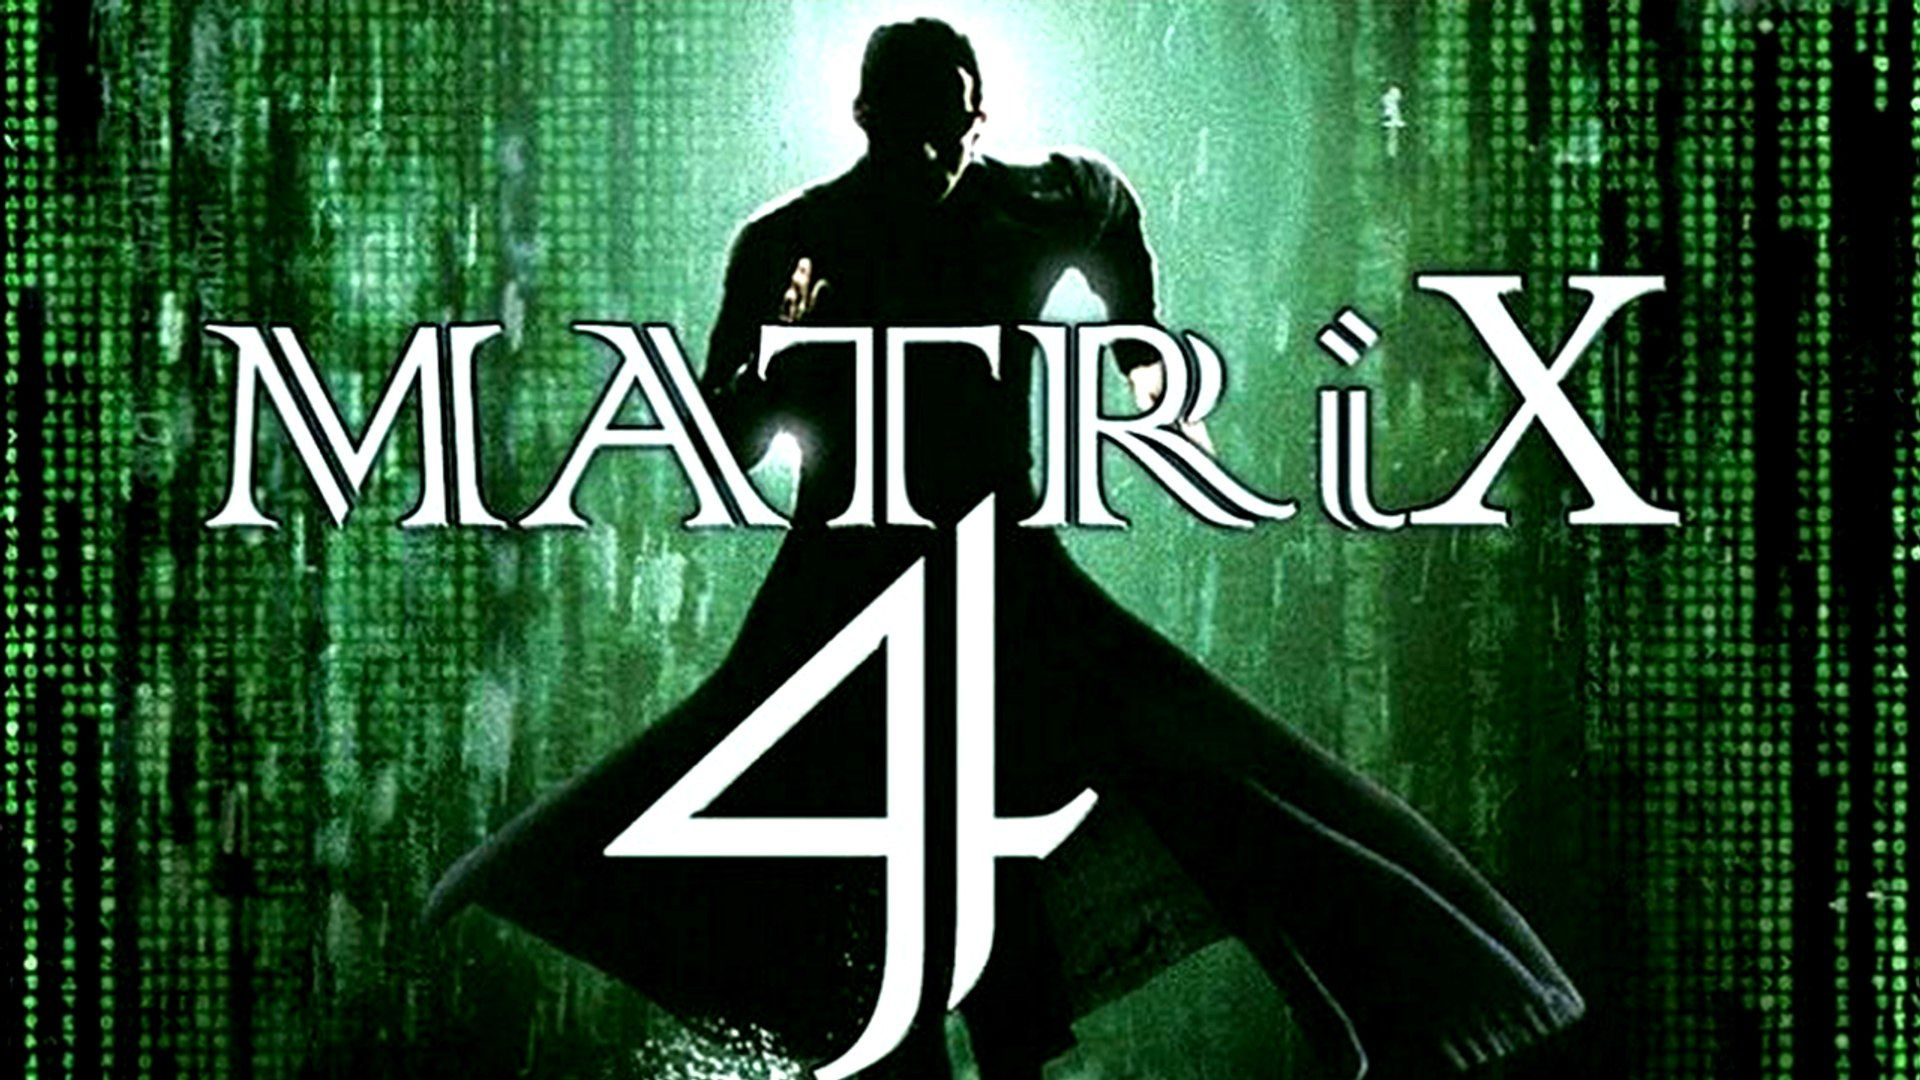 Regarder Matrix 4 2021 Film Complet Streaming Vf En Français Hd